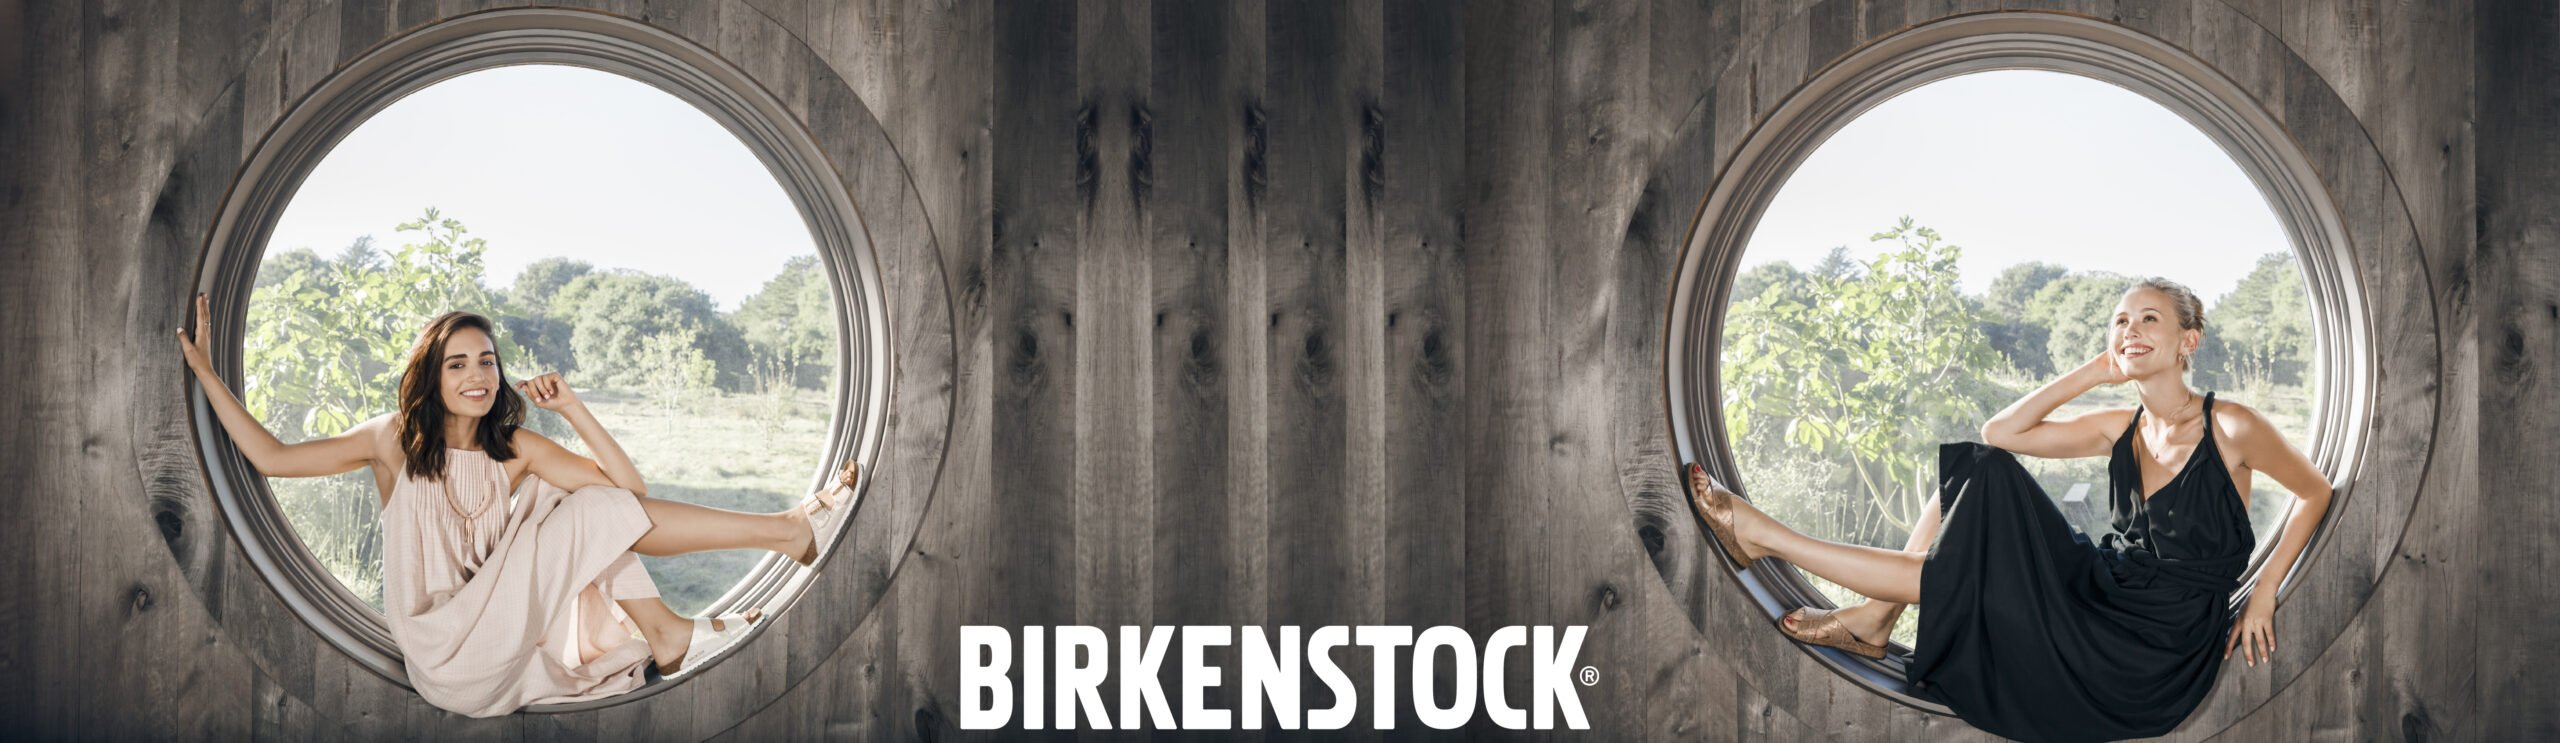 Birkenstock at Morgan's Shoes